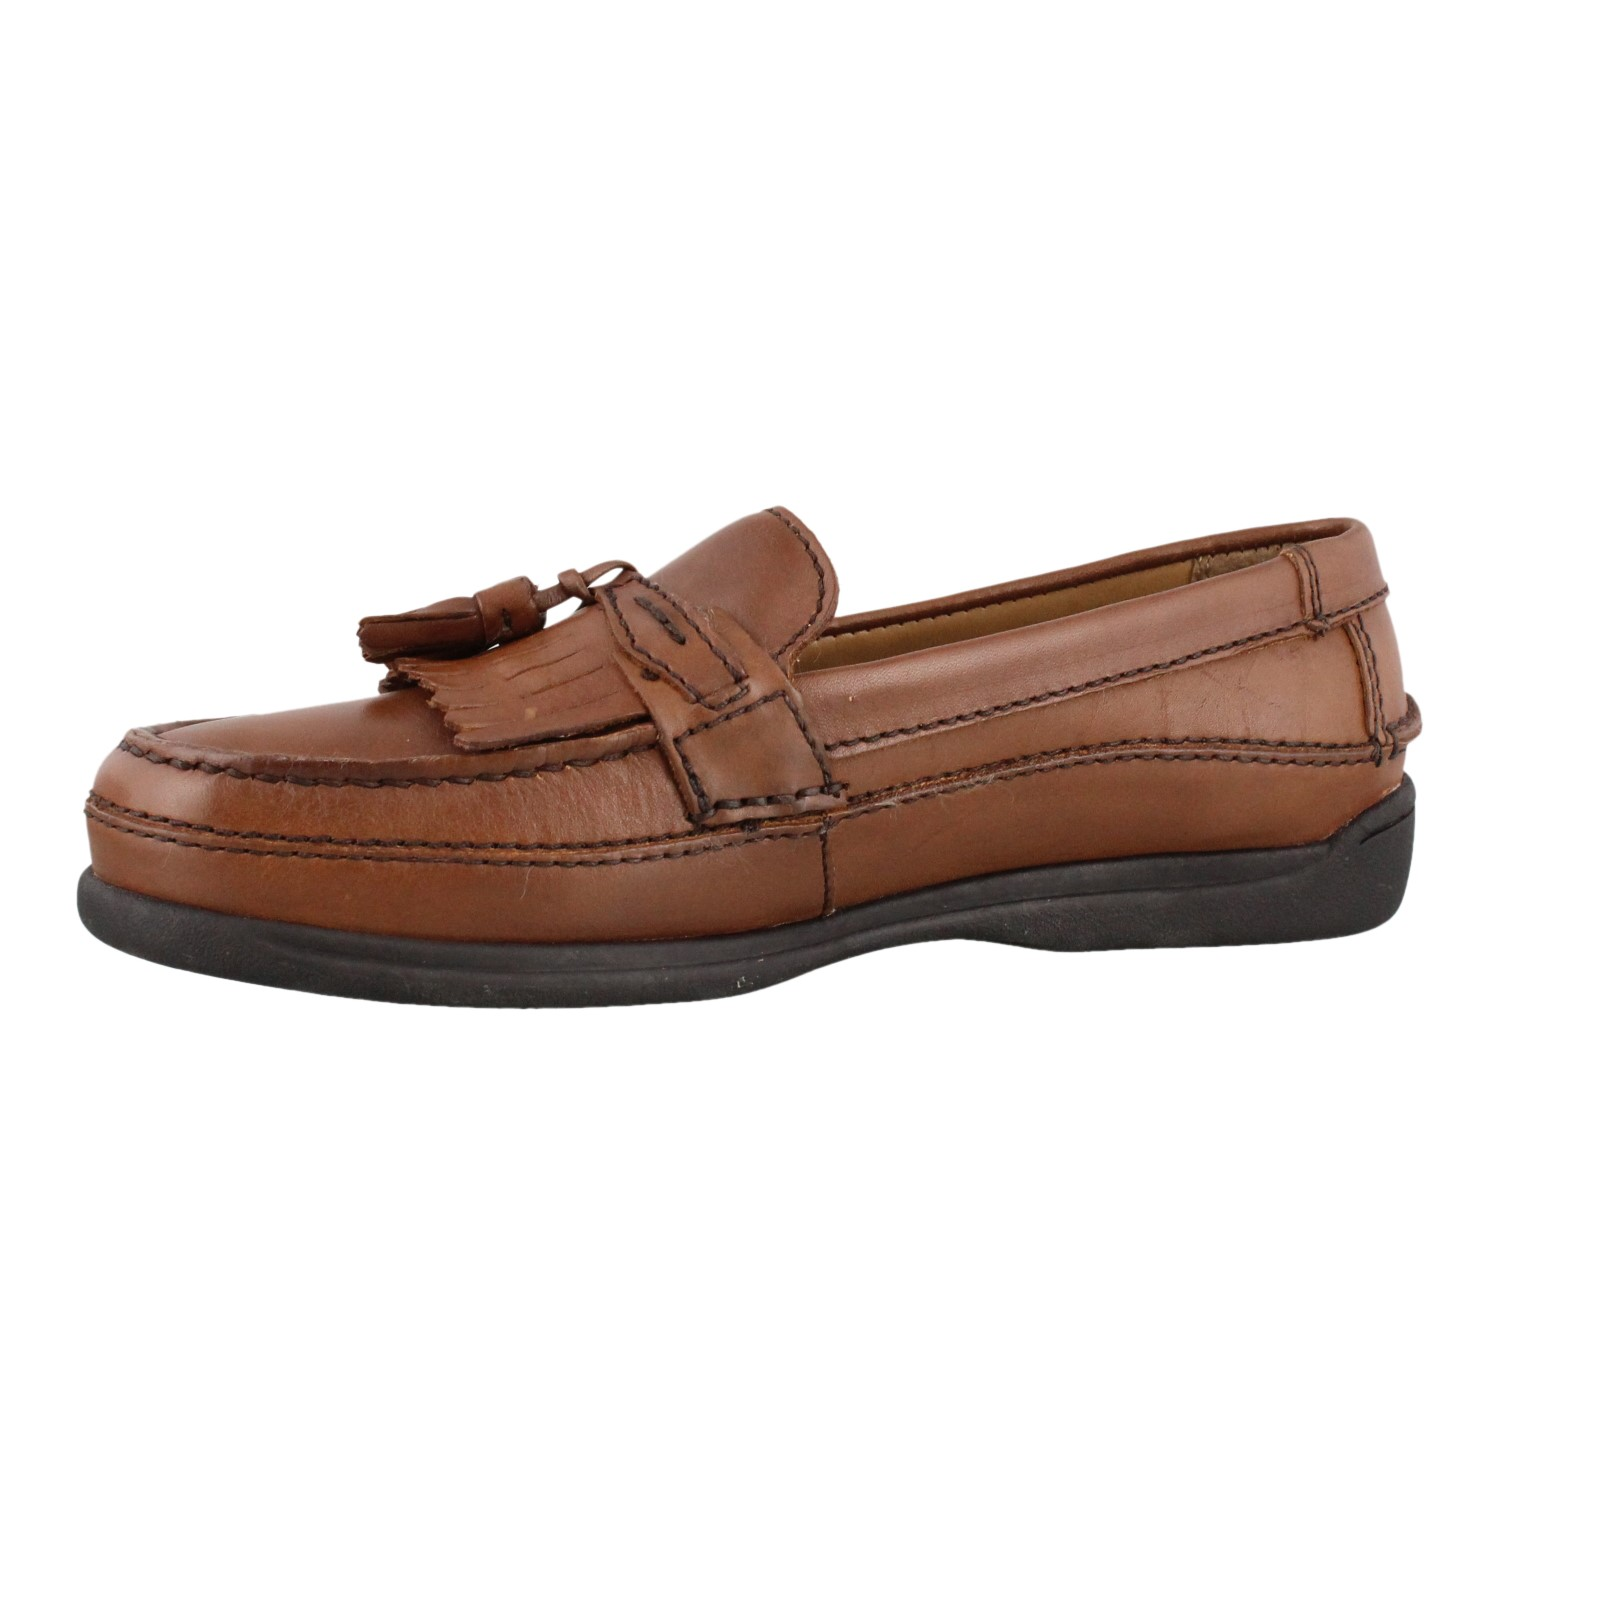 e5f3007aa10 Next. add to favorites. Men s Dockers